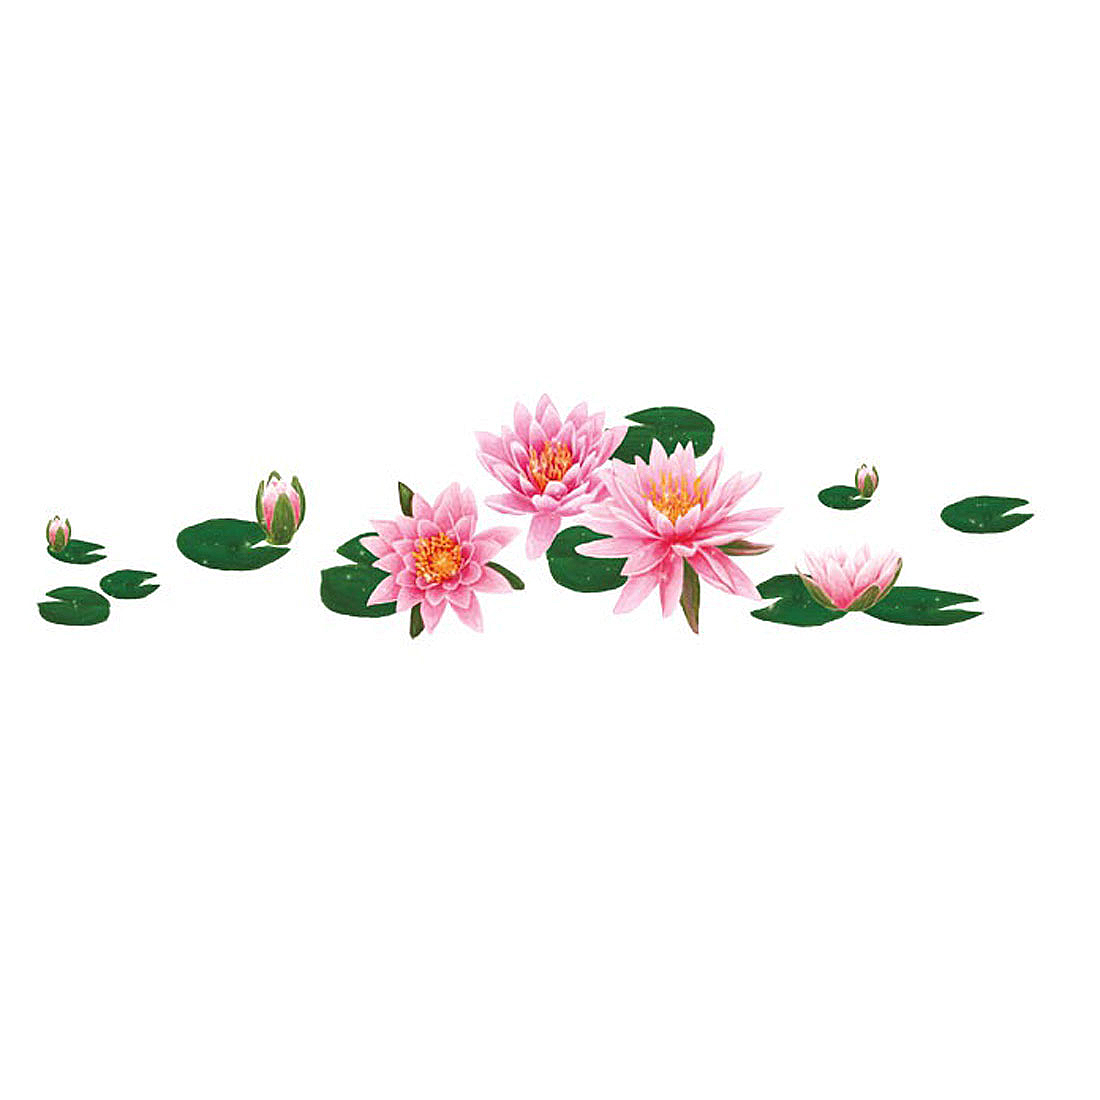 Water Lily Pattern Self-adhesive Removable Wall Sticker Paper Mural Ornament